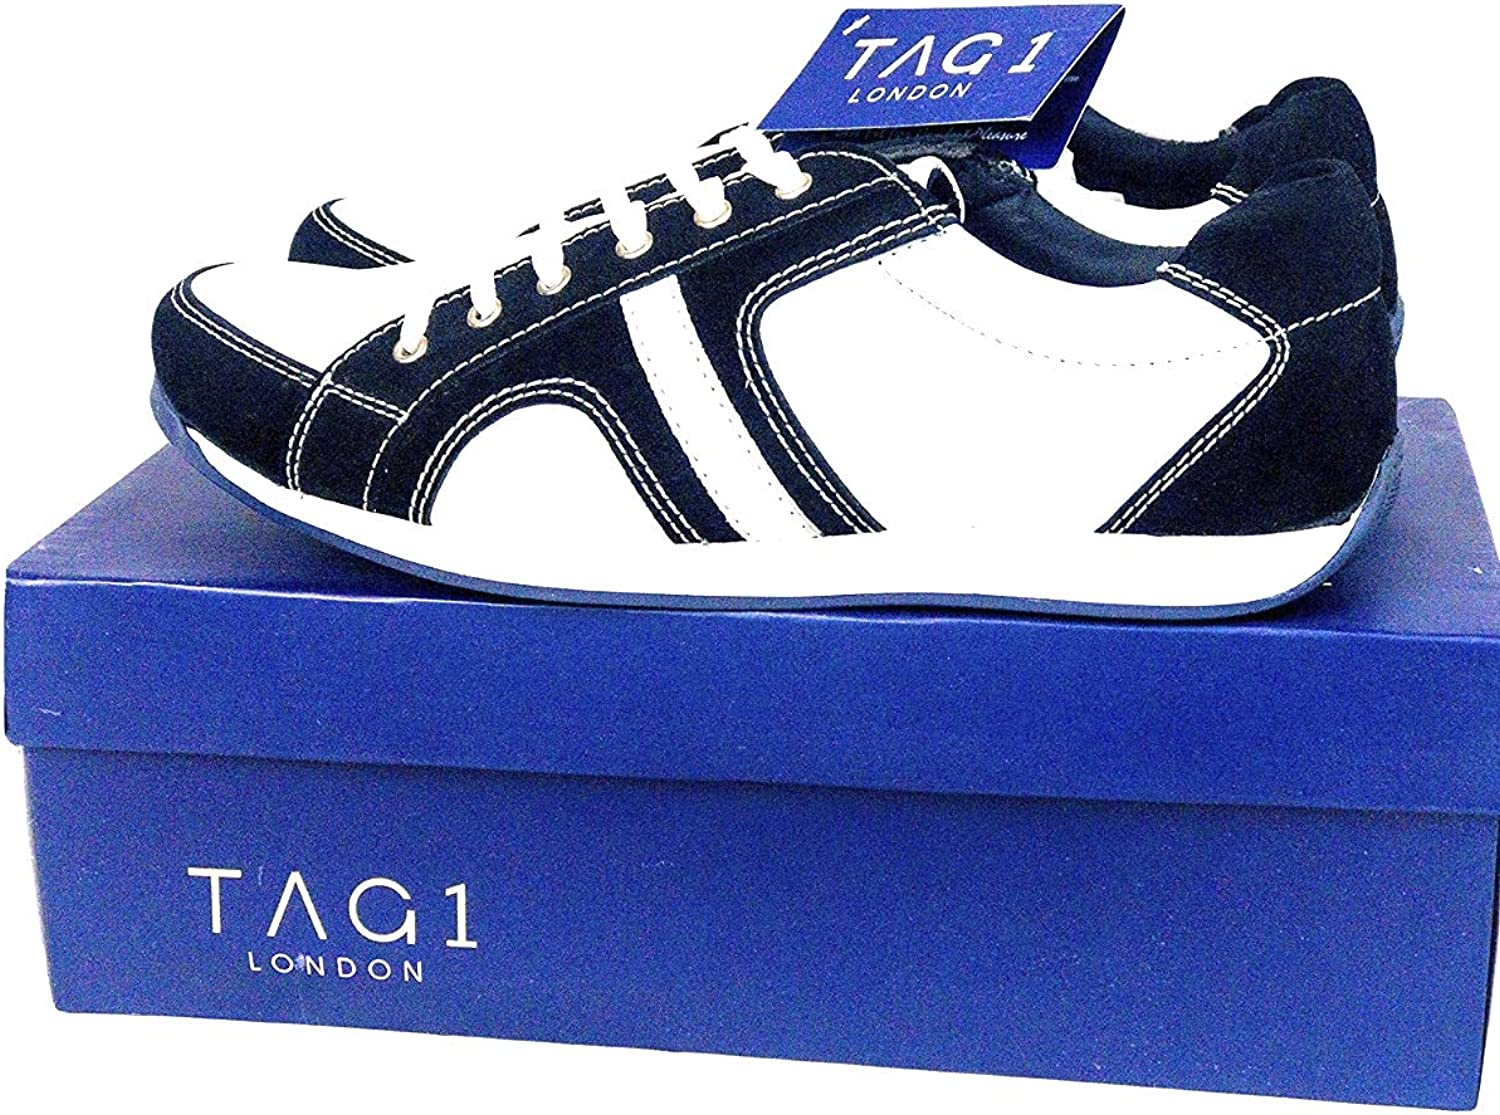 Tag1 London Mens Casual White bluee Leather Suede shoes